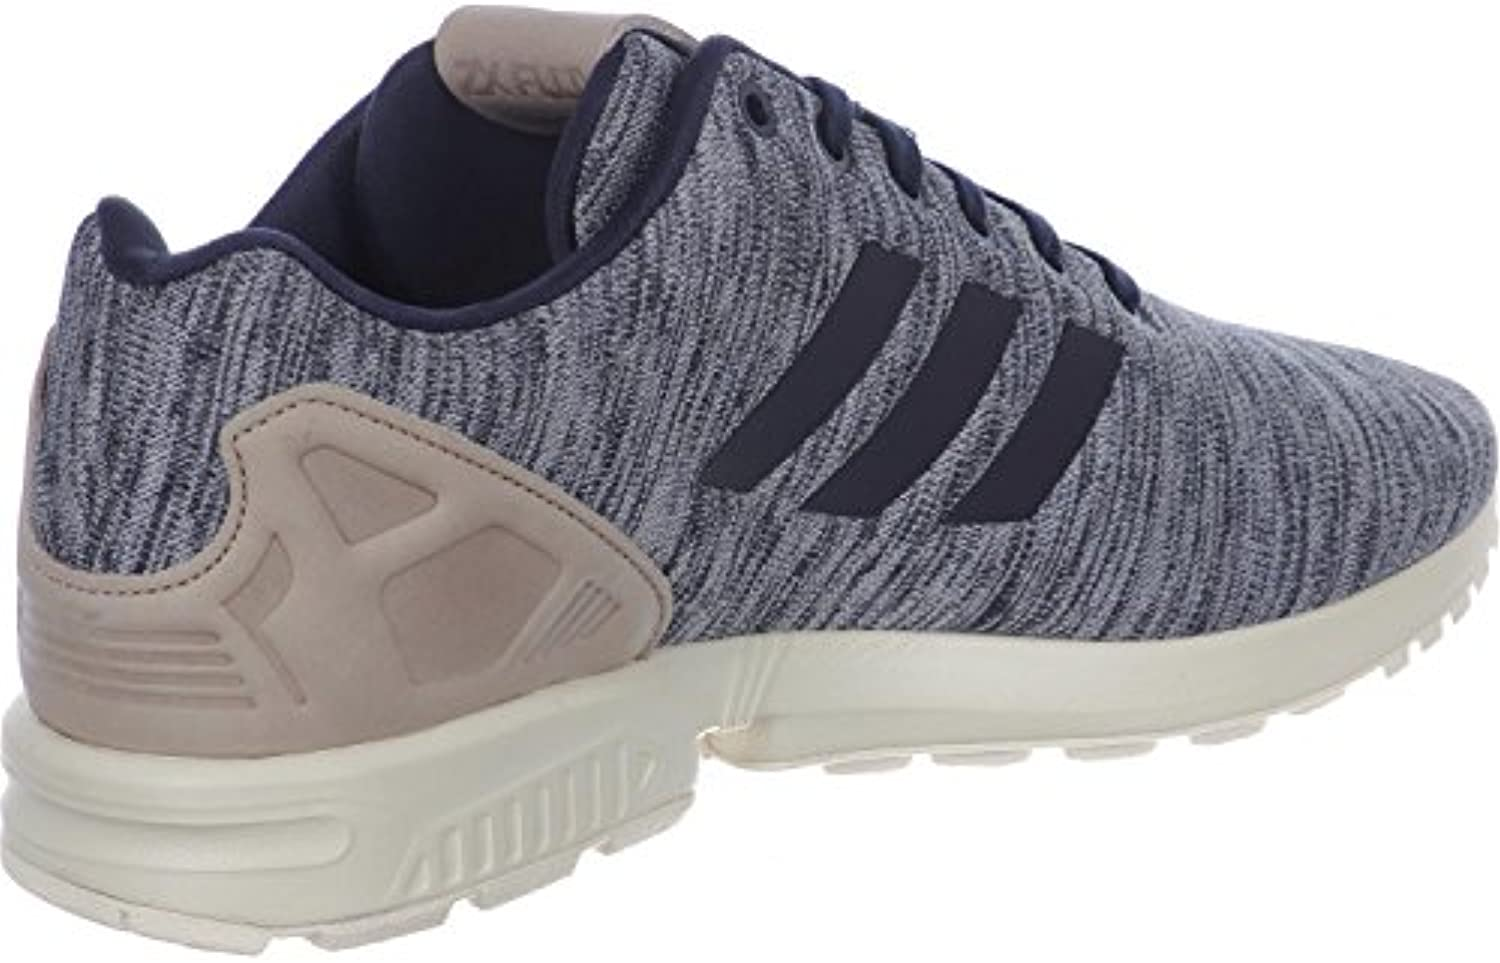 Herren Sneaker adidas Originals ZX Flux Sneakers